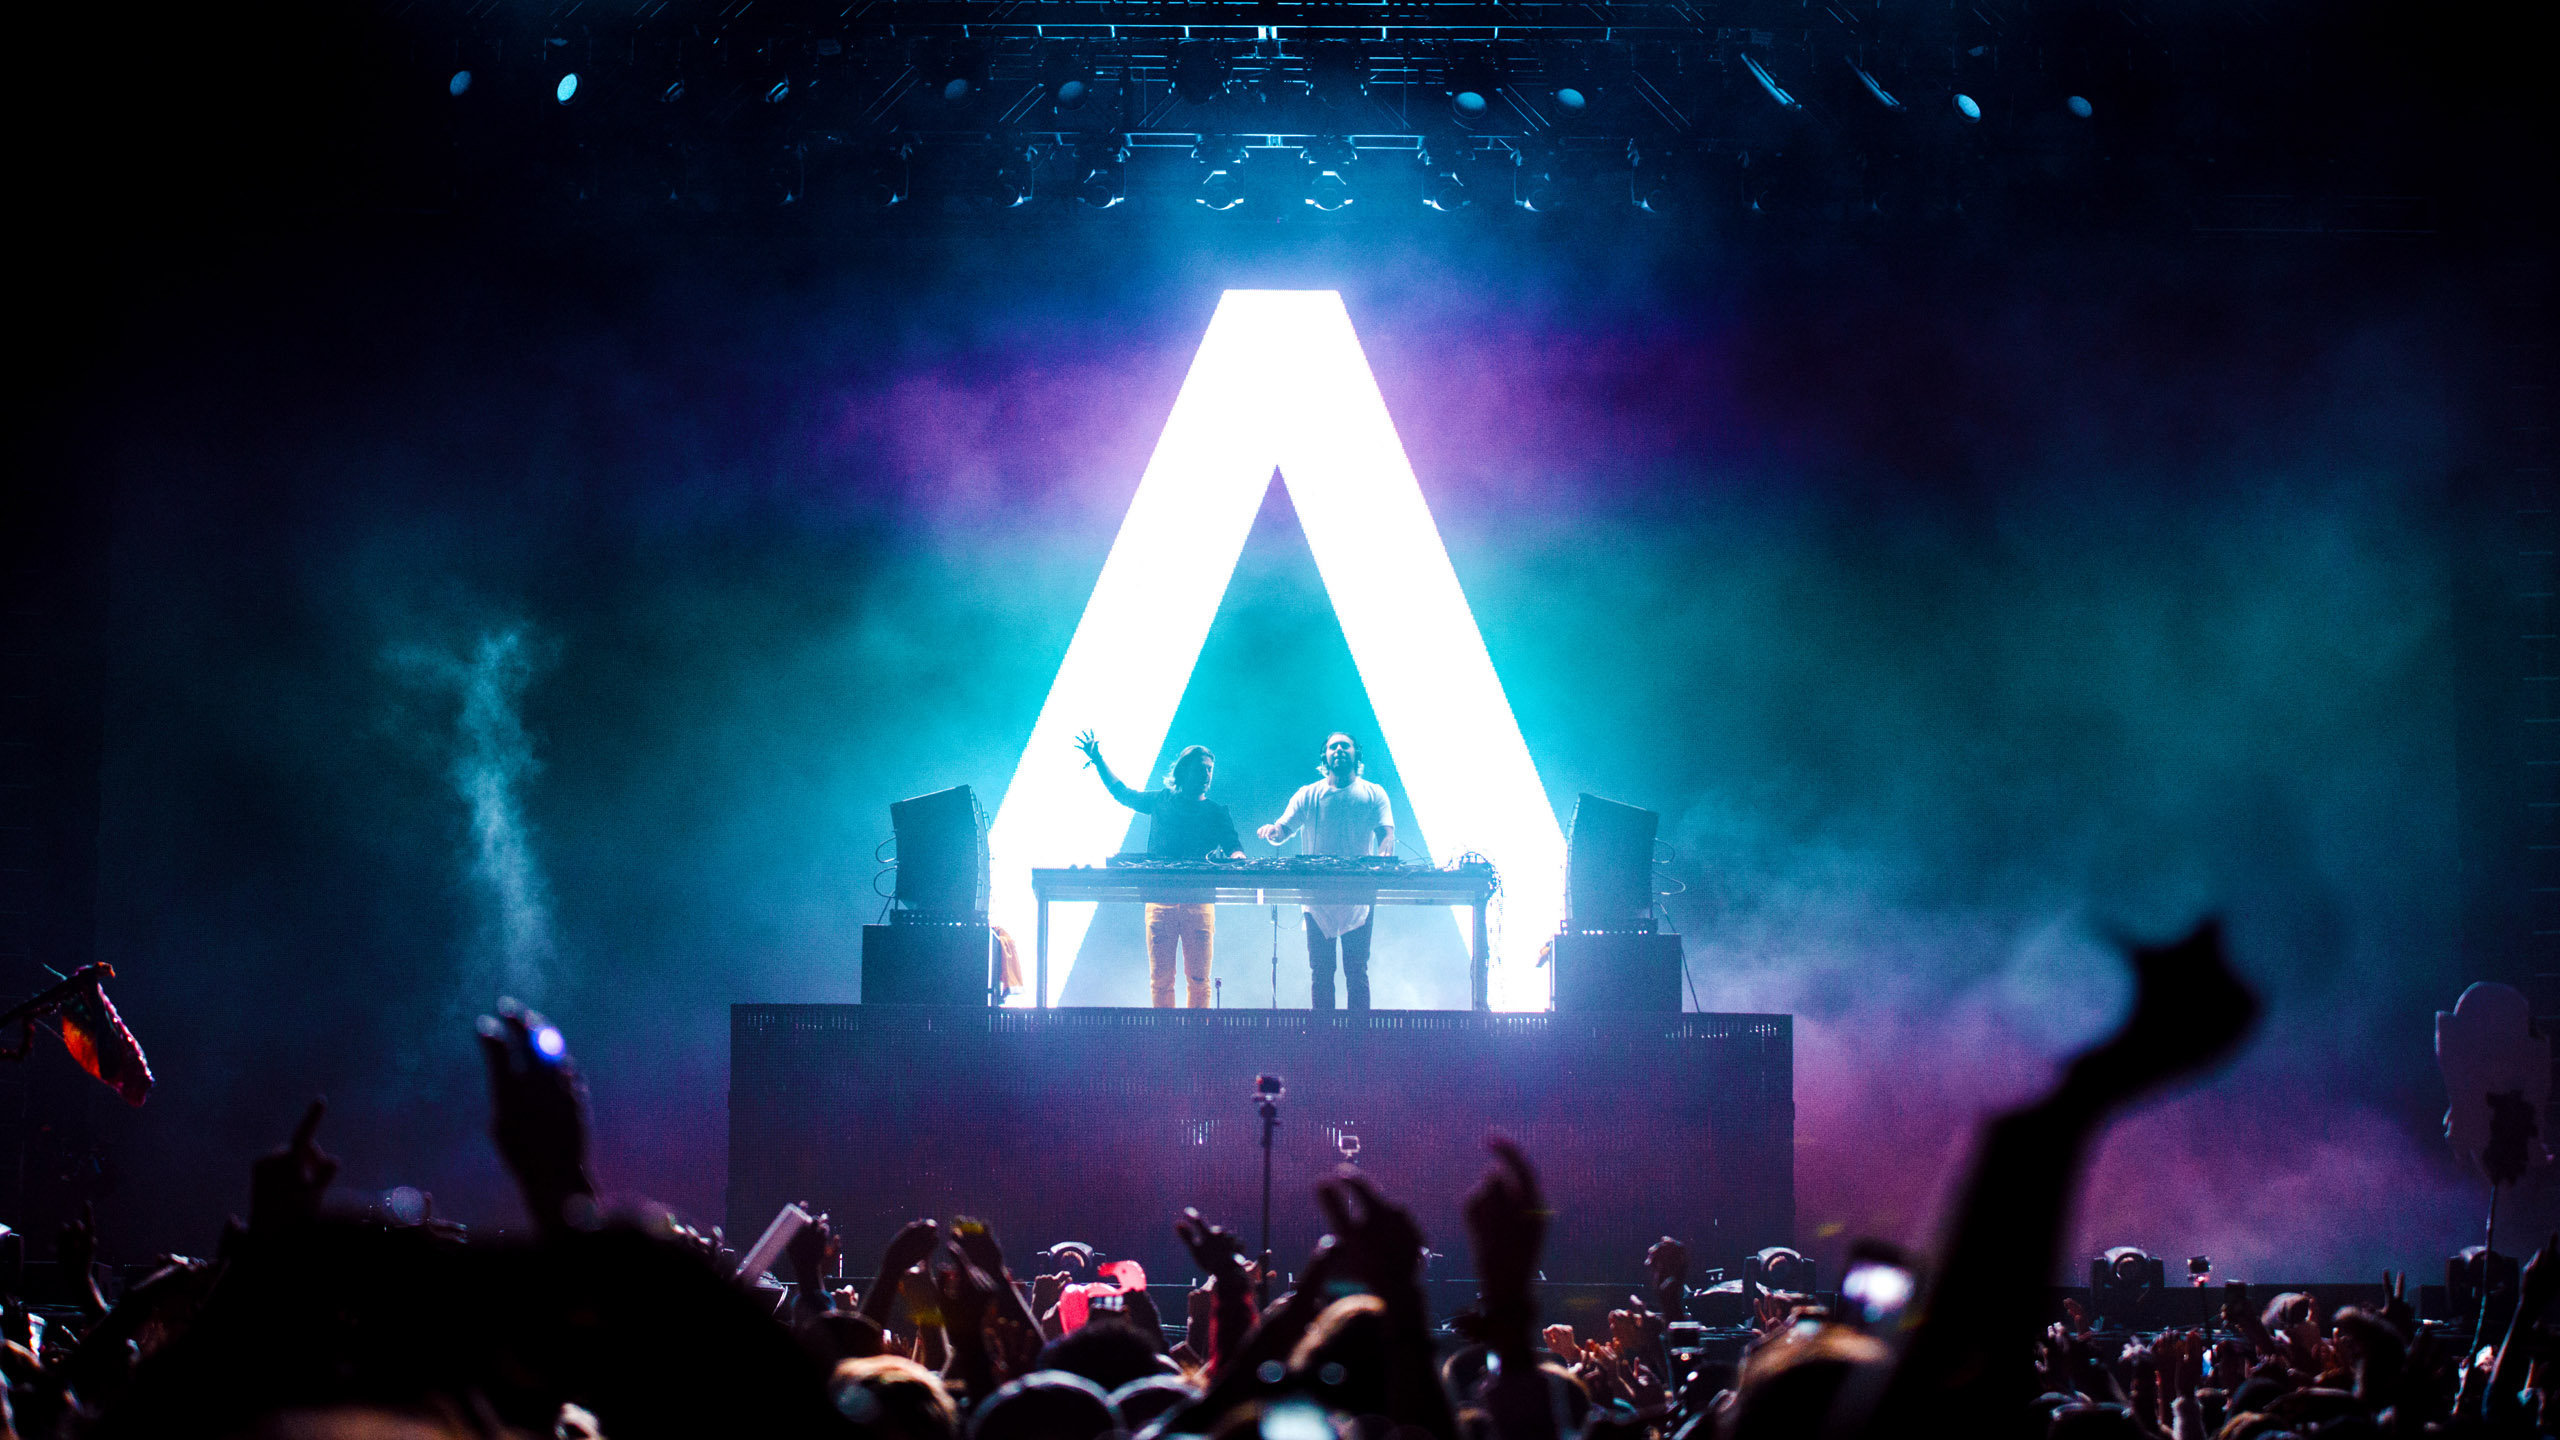 Cool Cute Girly Wallpapers Axwell Ingrosso Wallpaper Fundjstuff Com